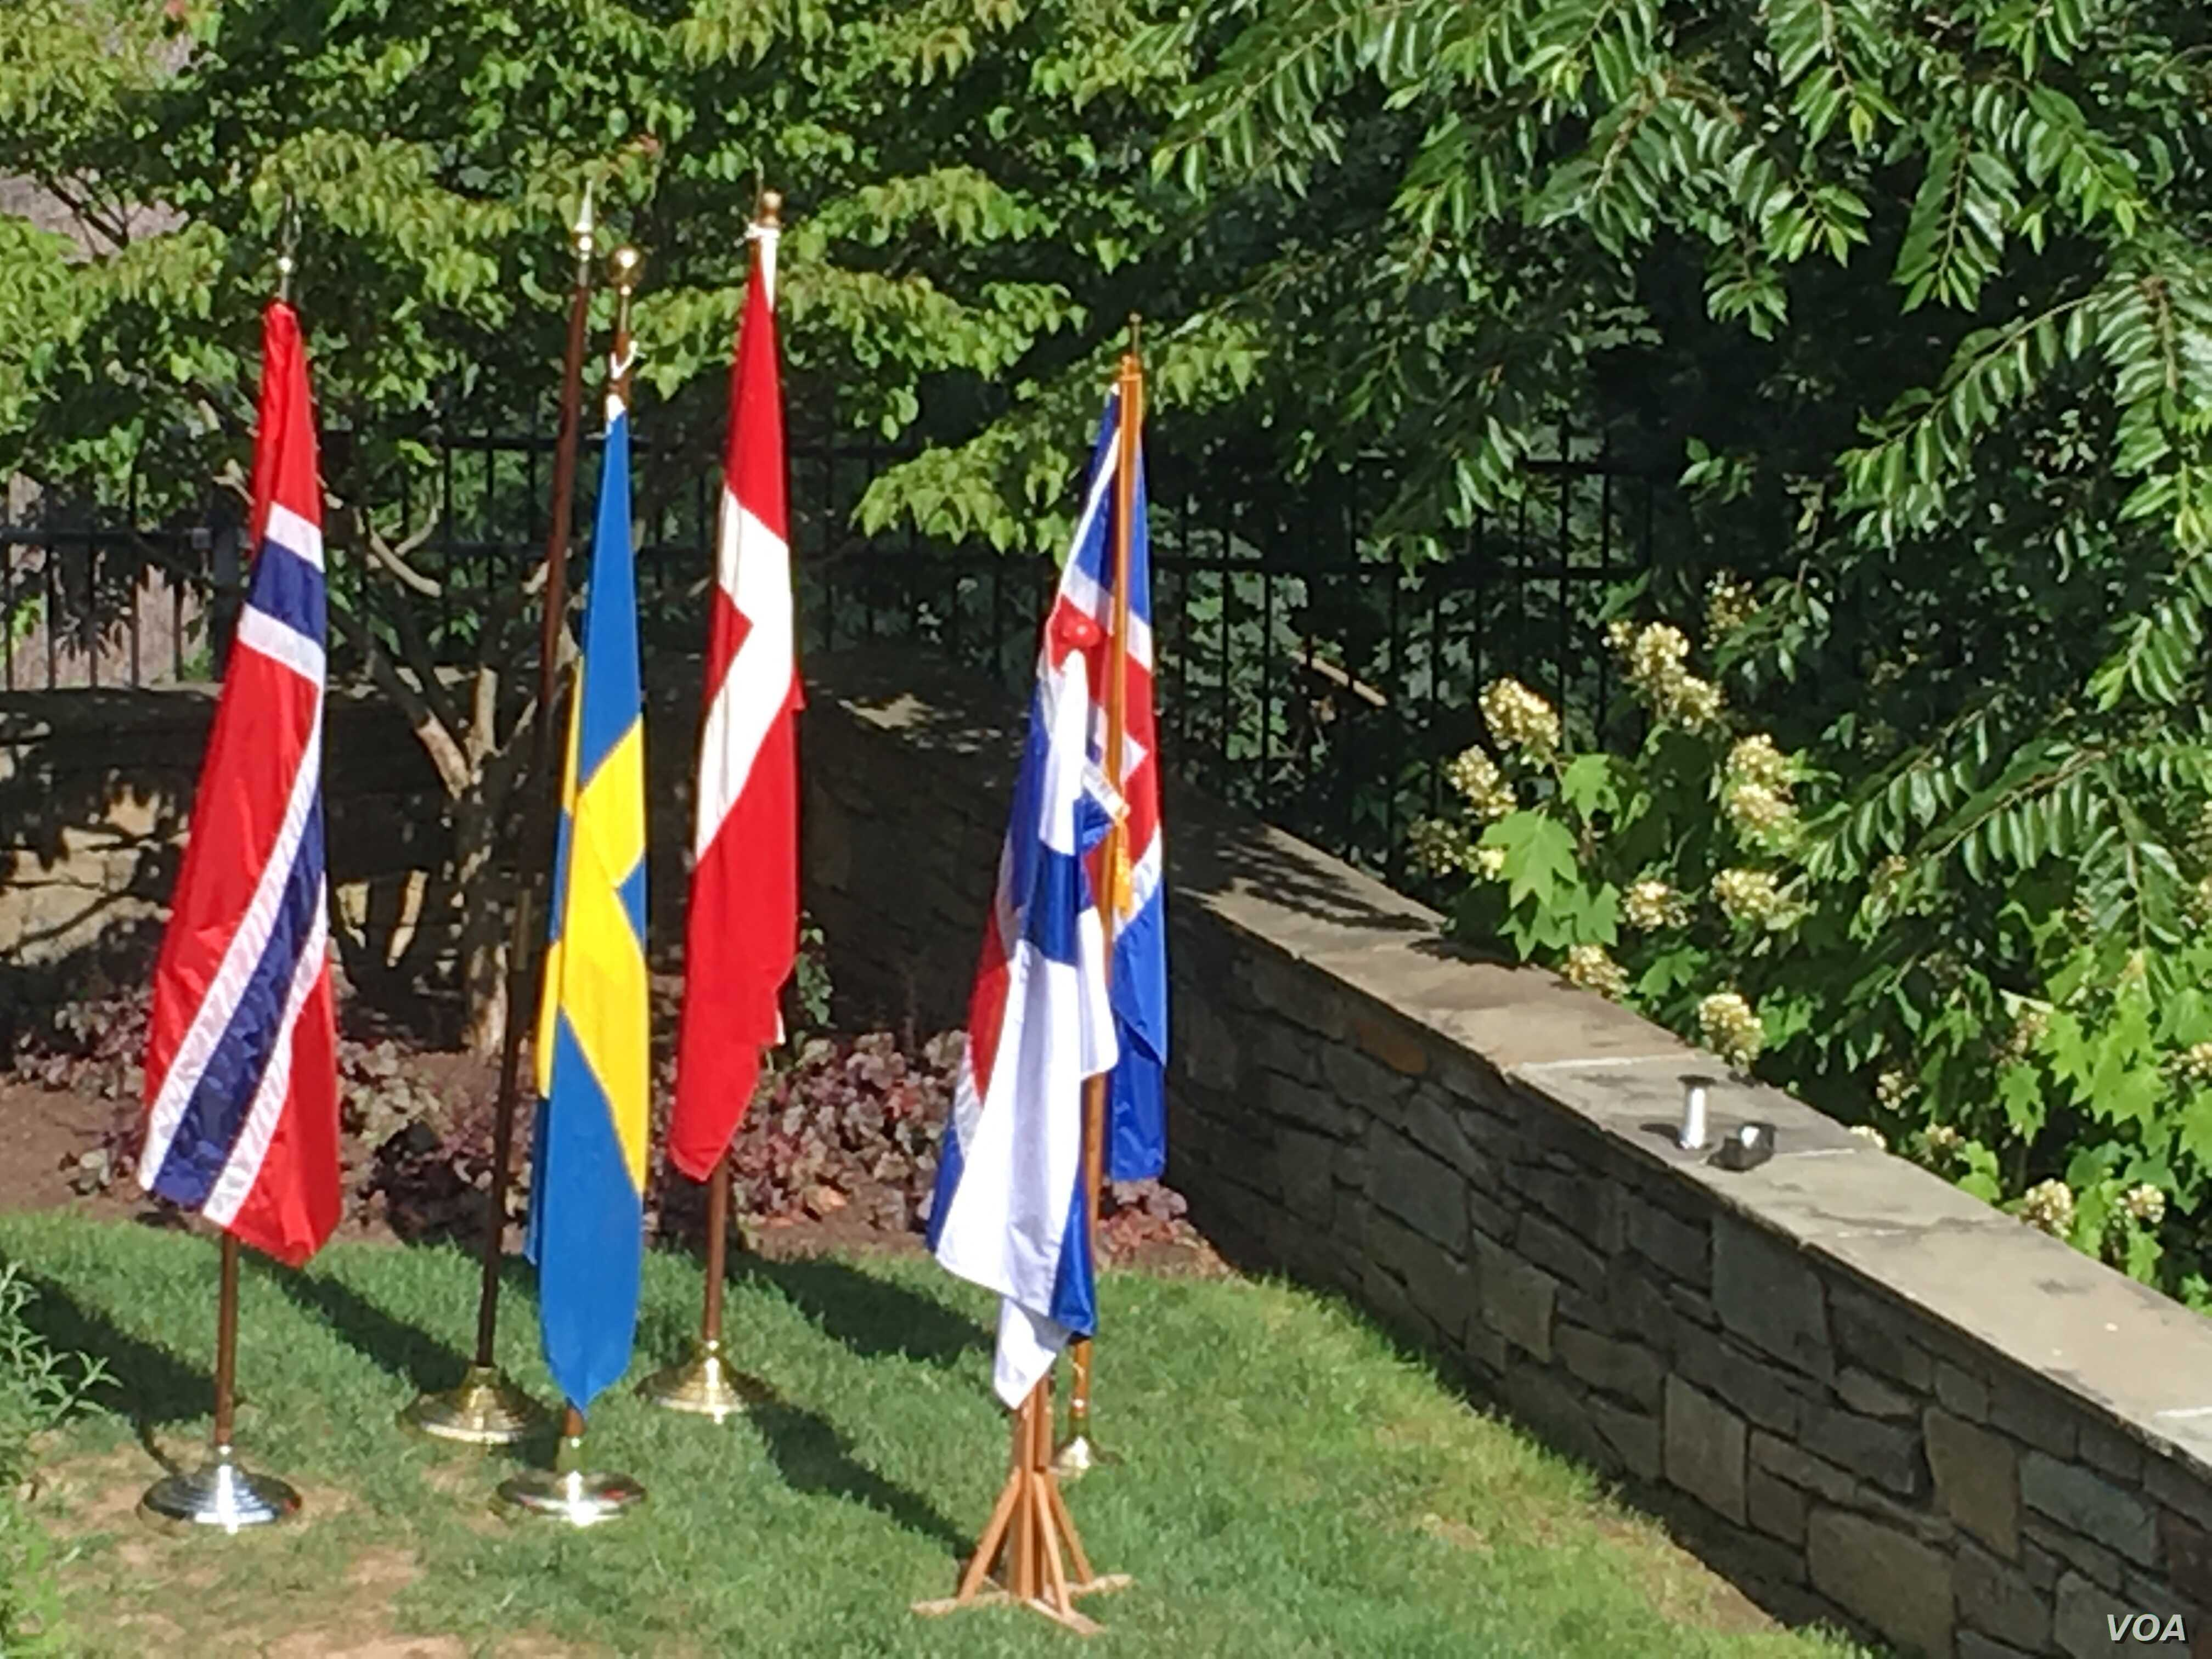 The flags of Nordic countries are on display at a concert at the Danish Embassy celebrating the 2019 Nordic Jazz Festival. (VOA/N. Liu)